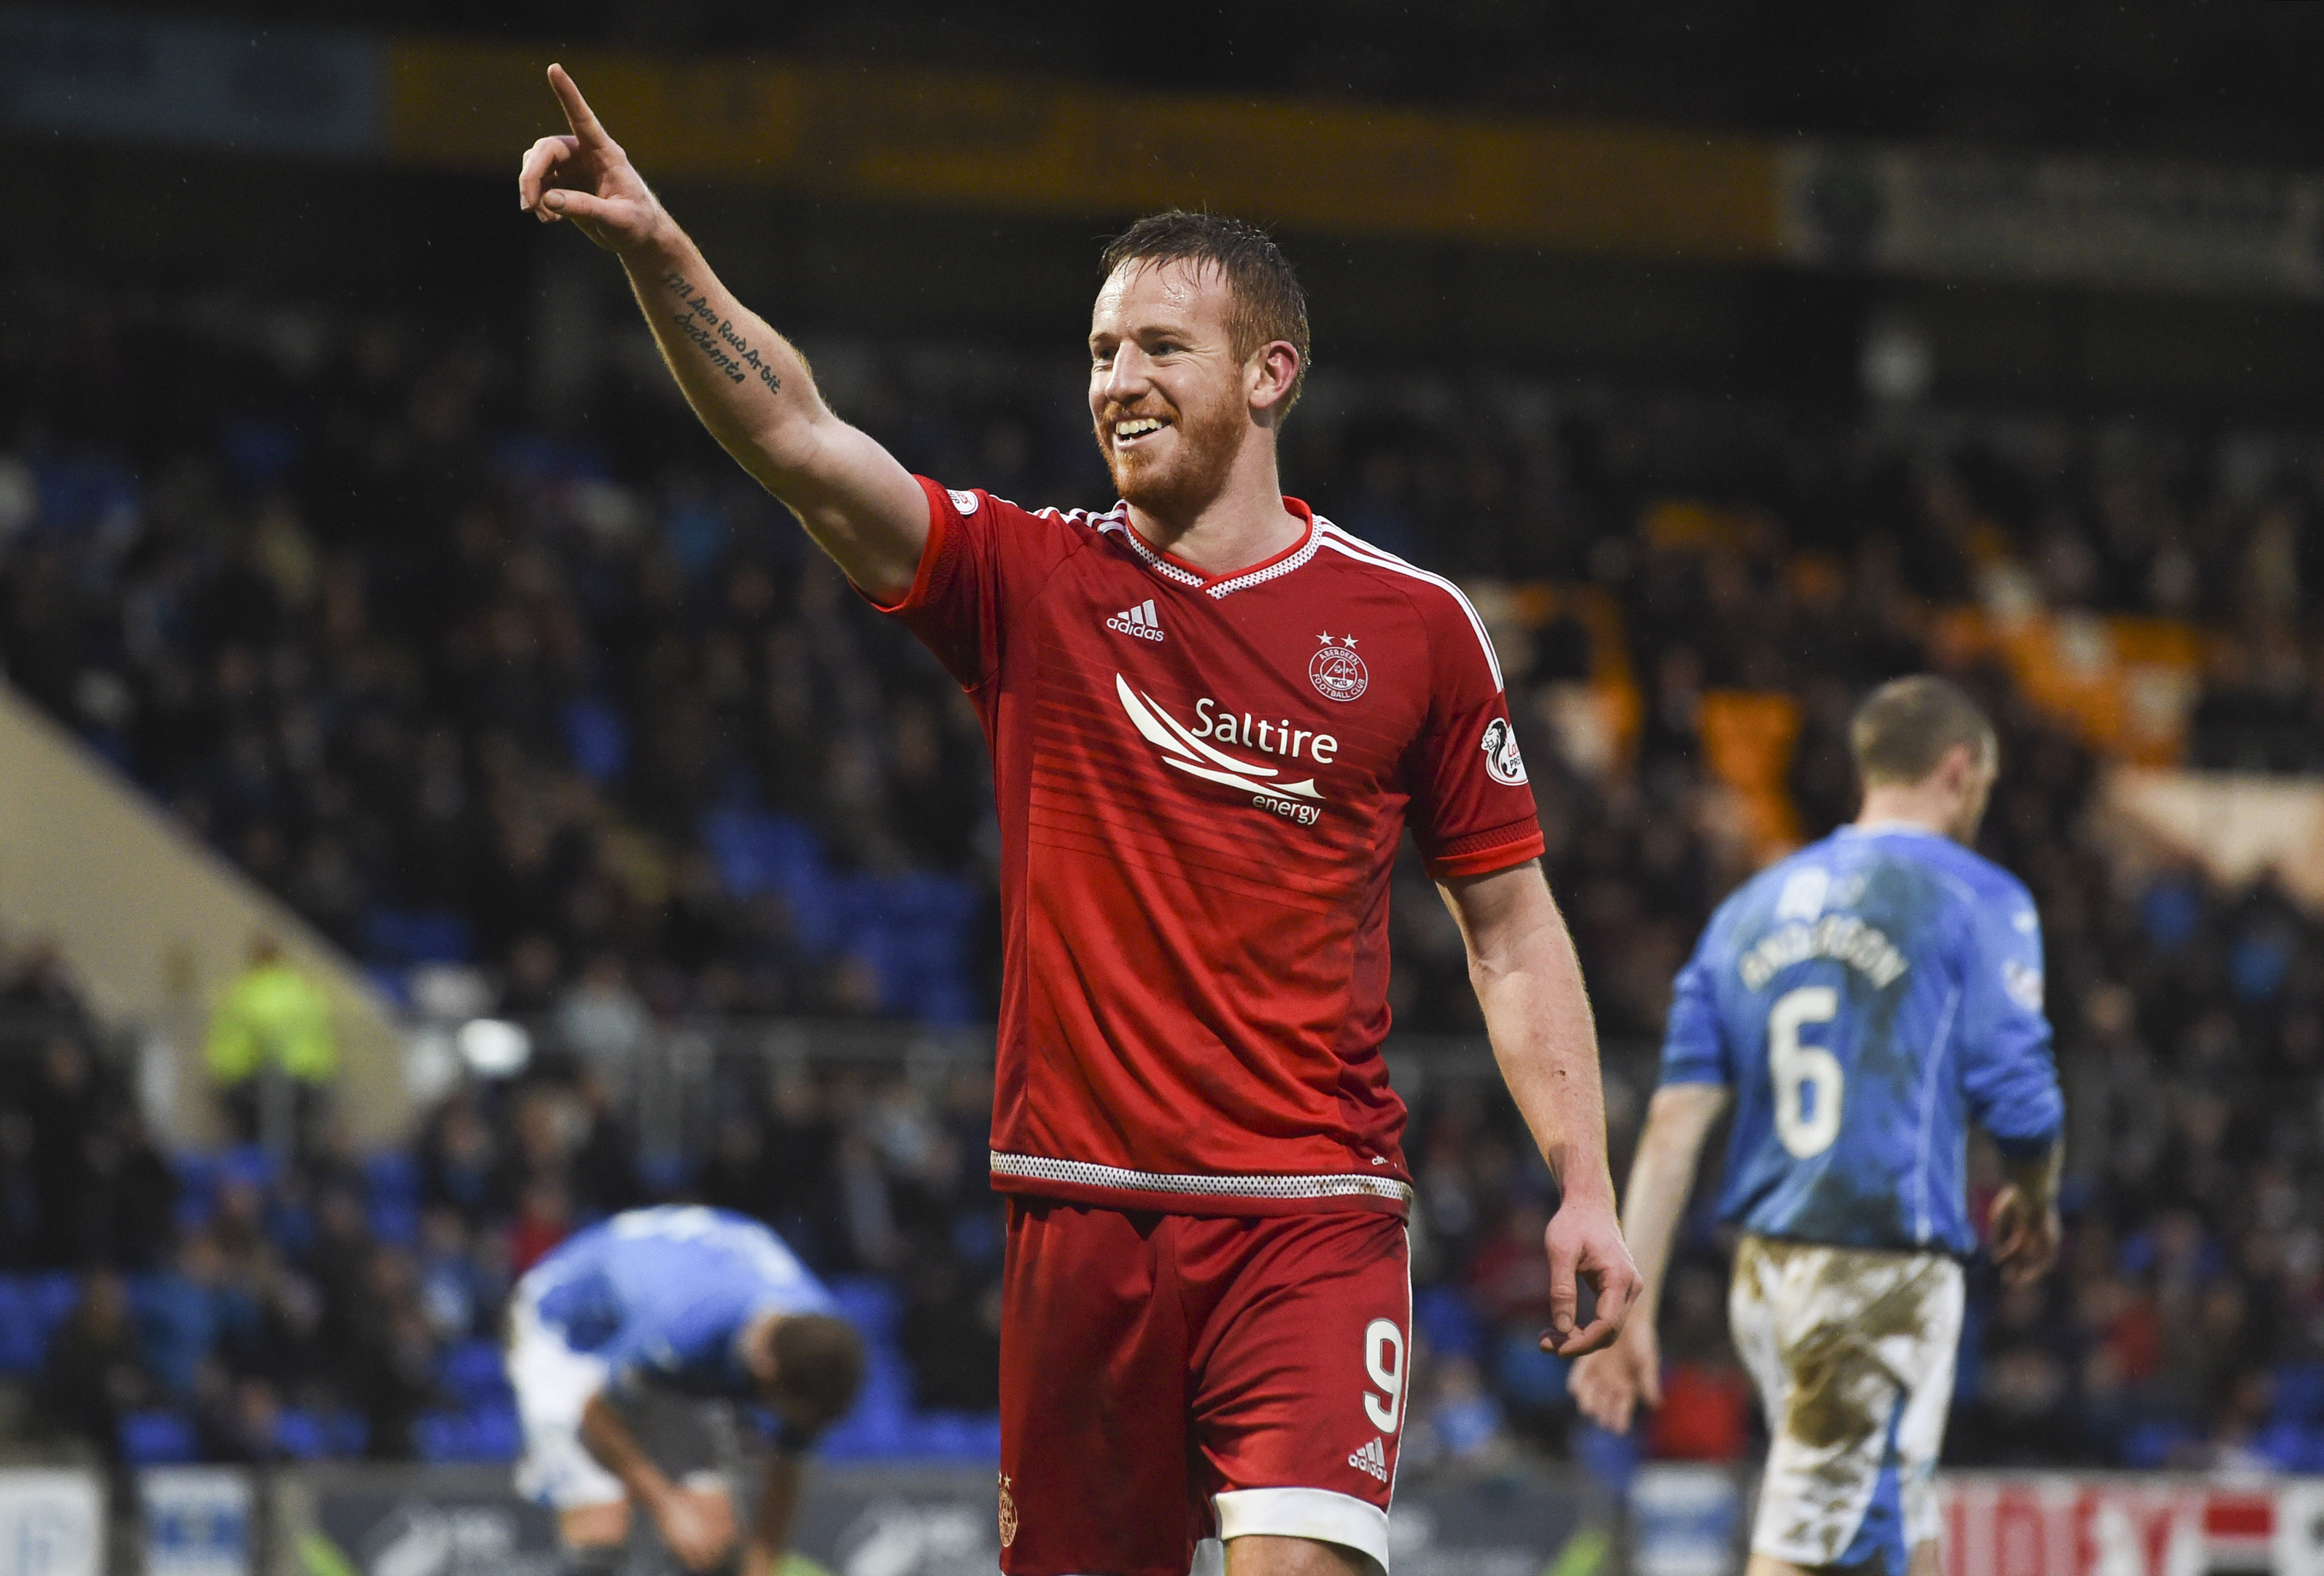 Aberdeen's Adam Rooney celebrates his second goal of the game